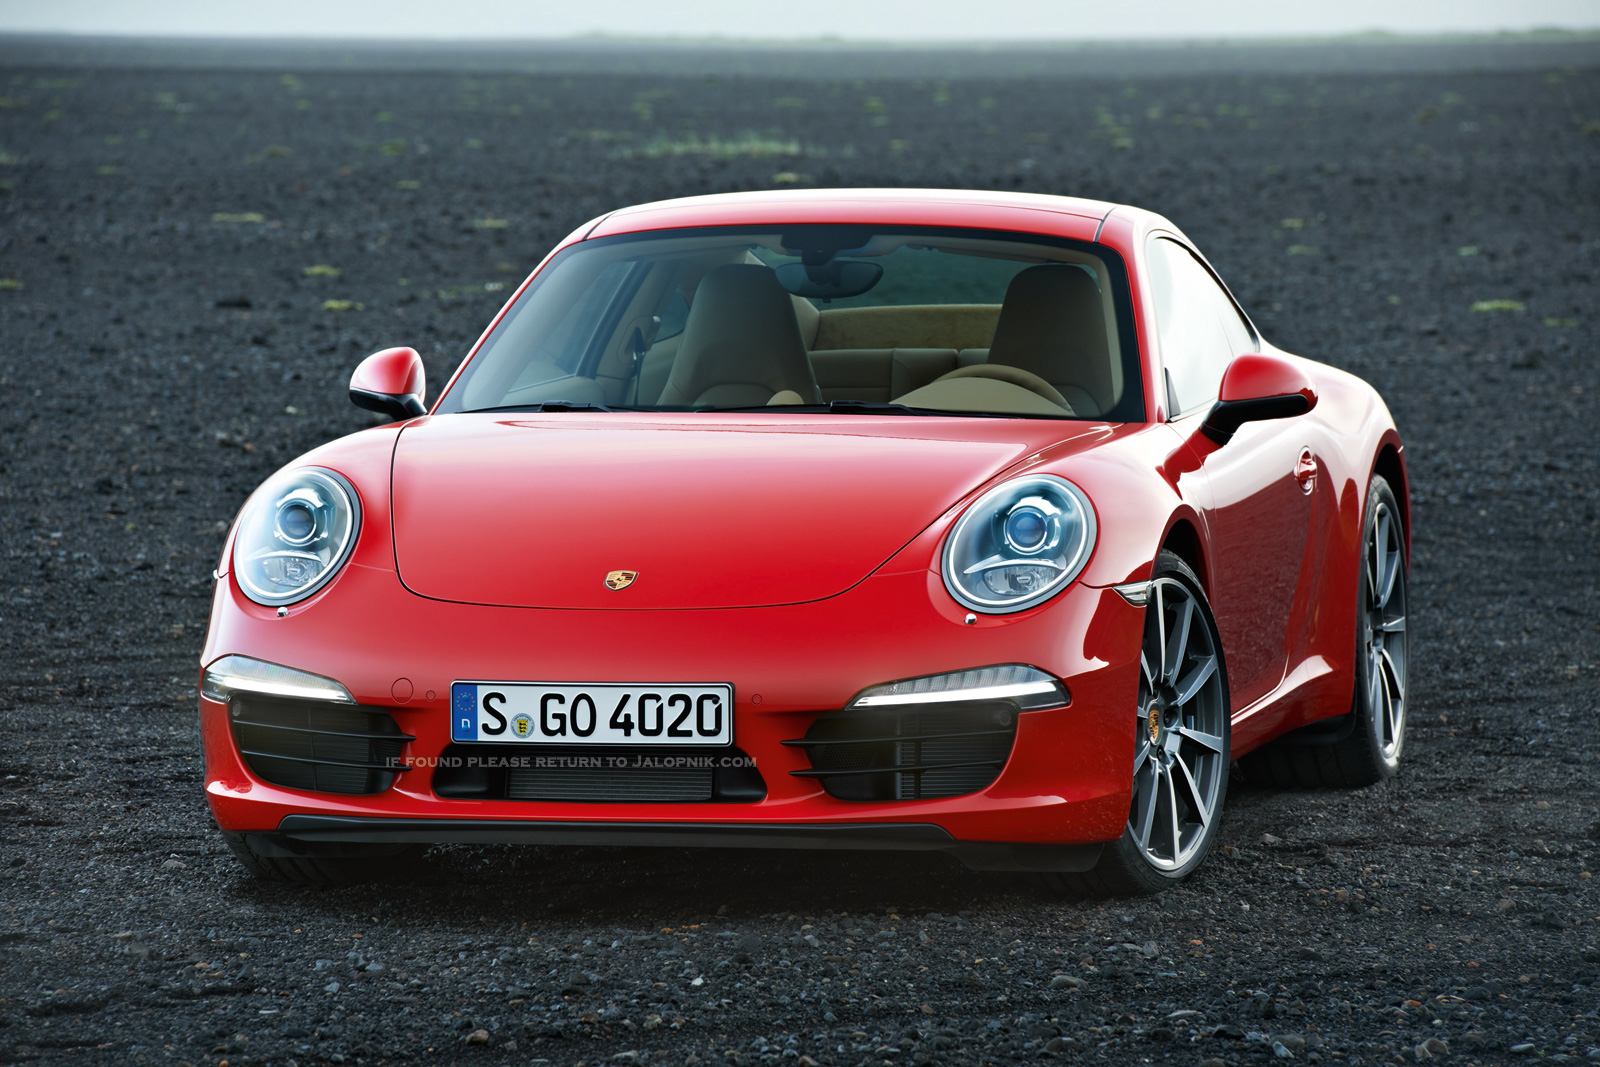 new-porsche-911_porsche-991_2012-official-images_002